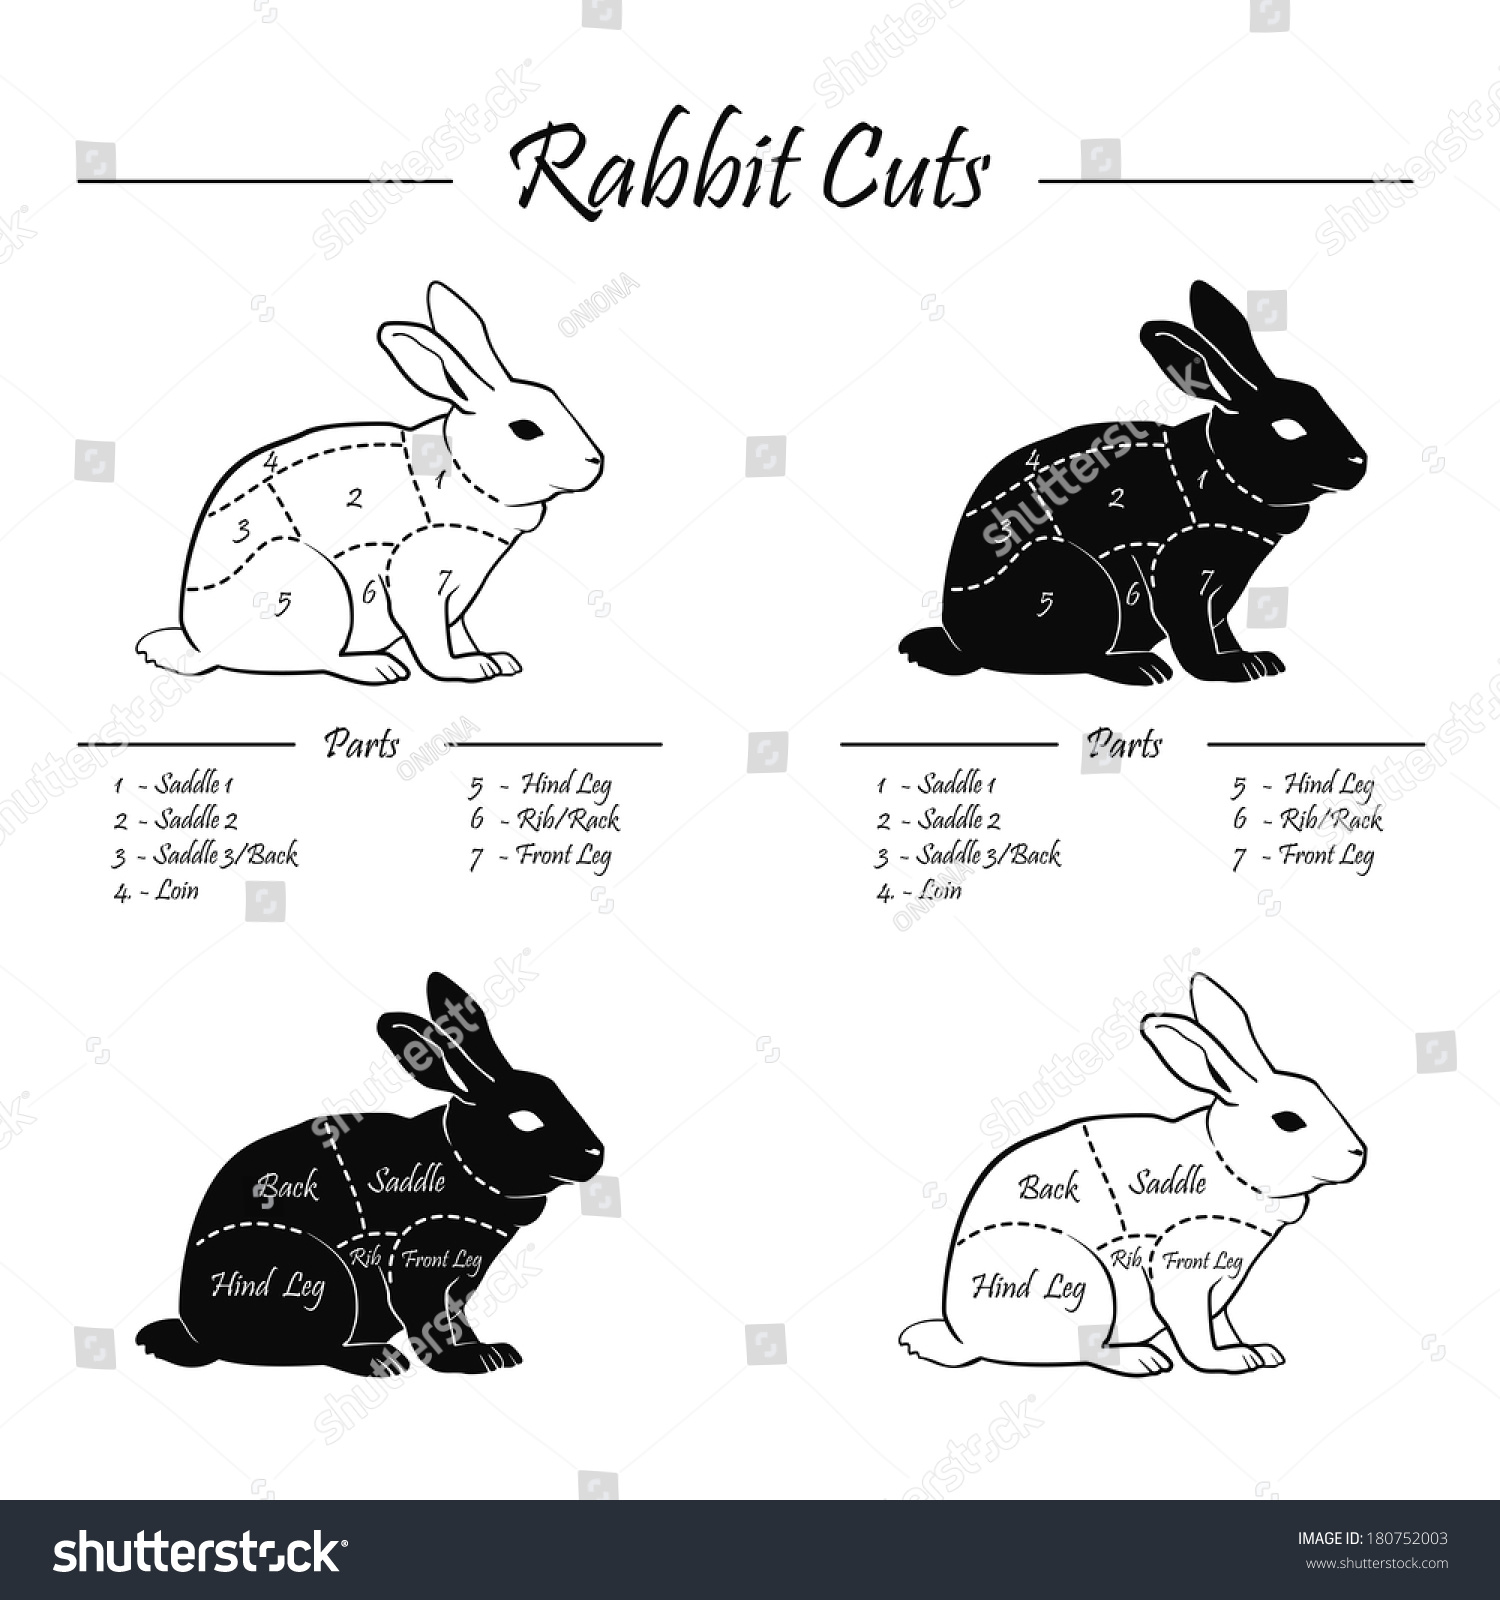 Rabbit Cuts Diagram Of A - Auto Wiring Diagram Today •